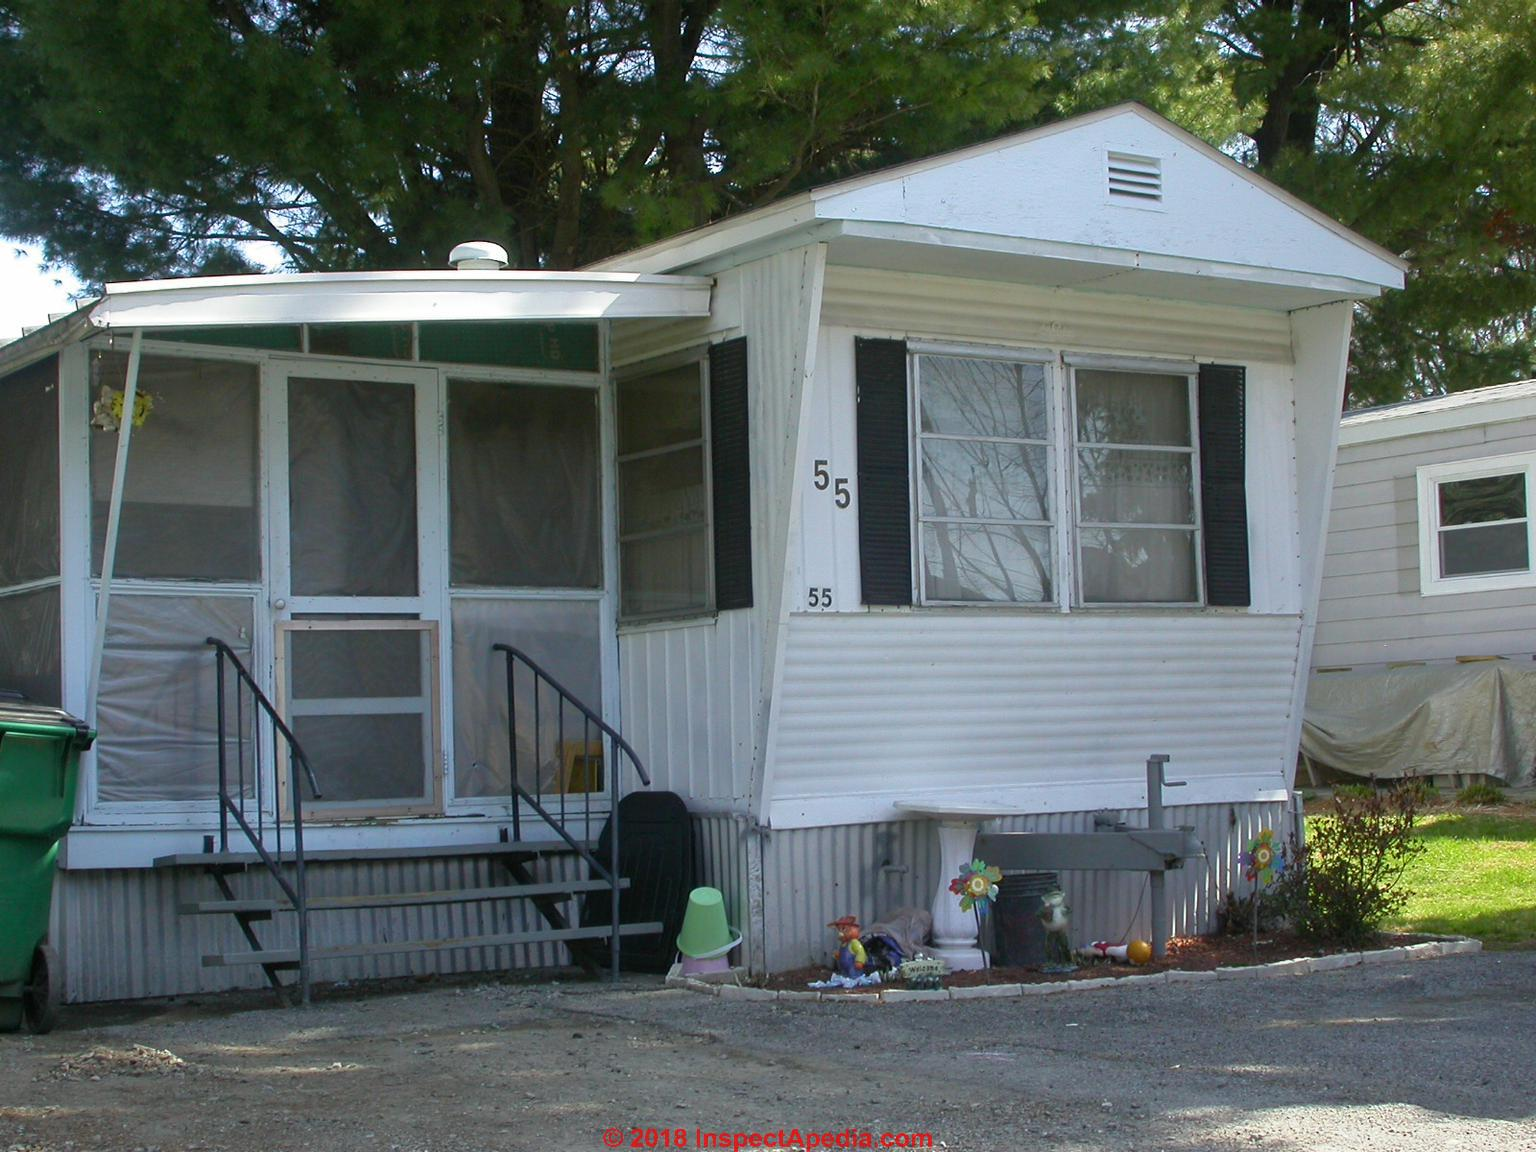 Mobile Home Code Faqs 2 Standards For Manufactured Homes Mobile Homes Trailers Multiwide Doublewides